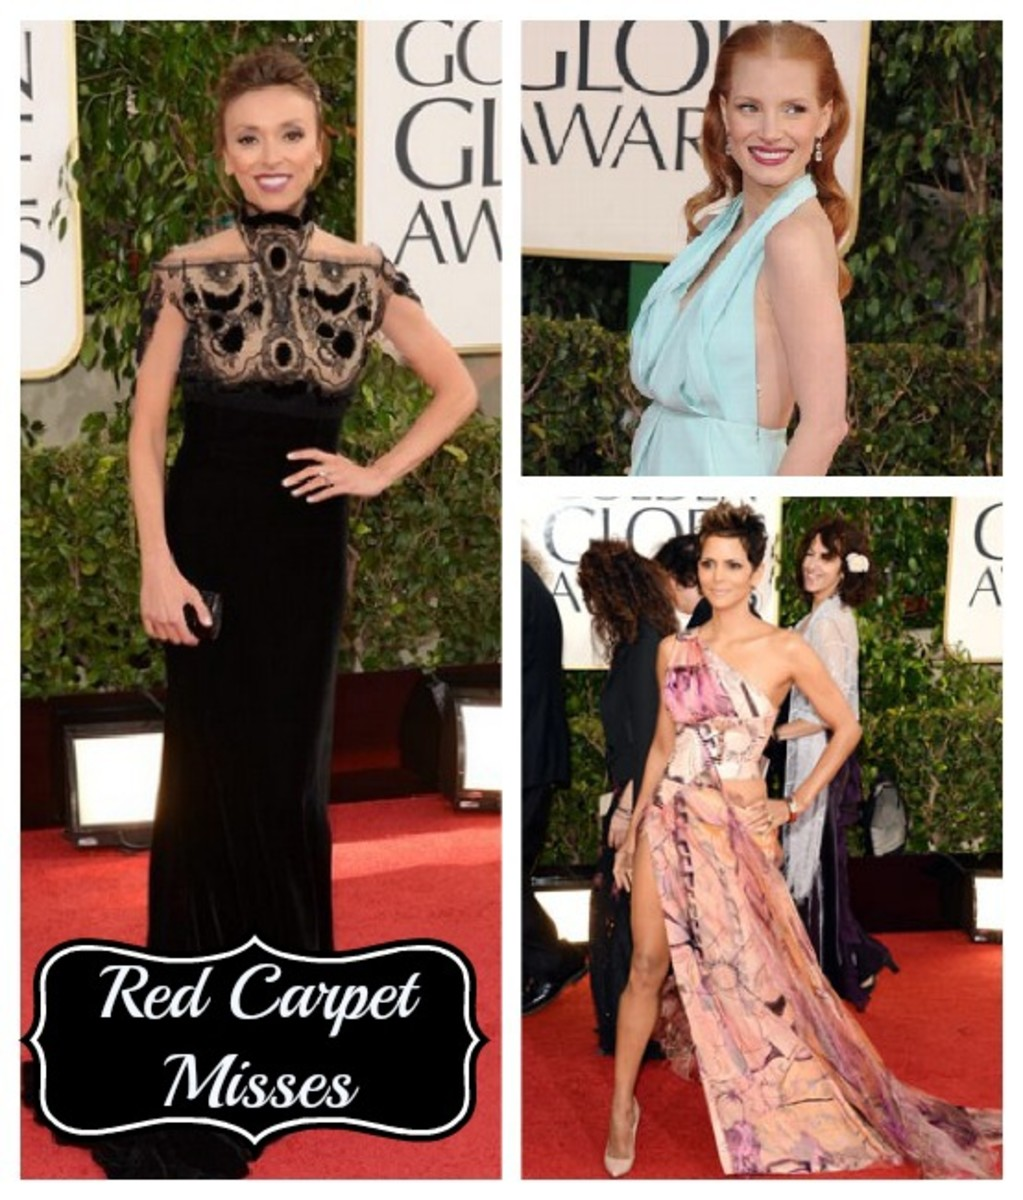 red carpet misses